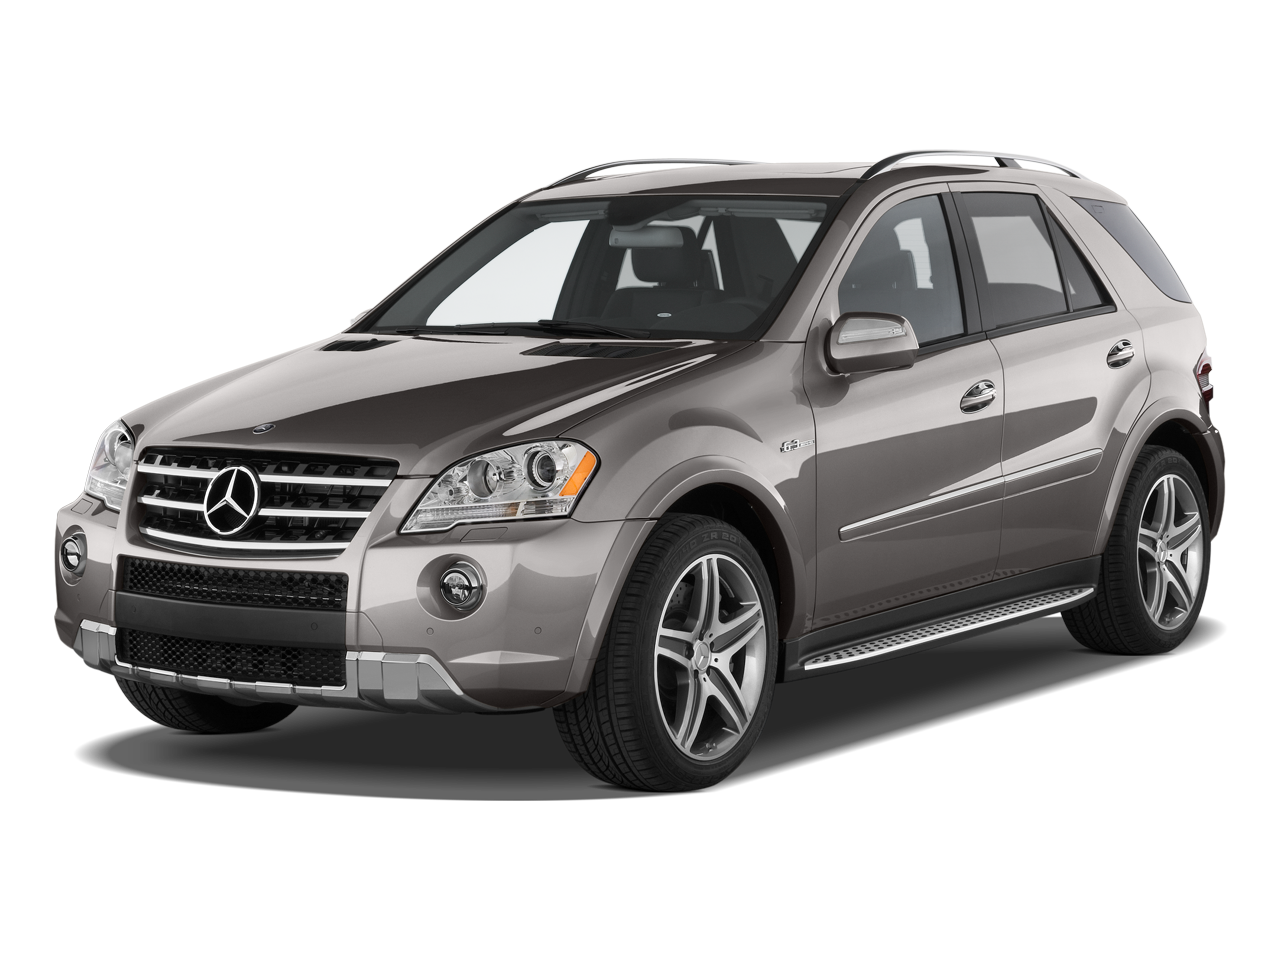 2009 mercedes benz ml320 bluetec mercedes benz crossover suv review automobile magazine. Black Bedroom Furniture Sets. Home Design Ideas